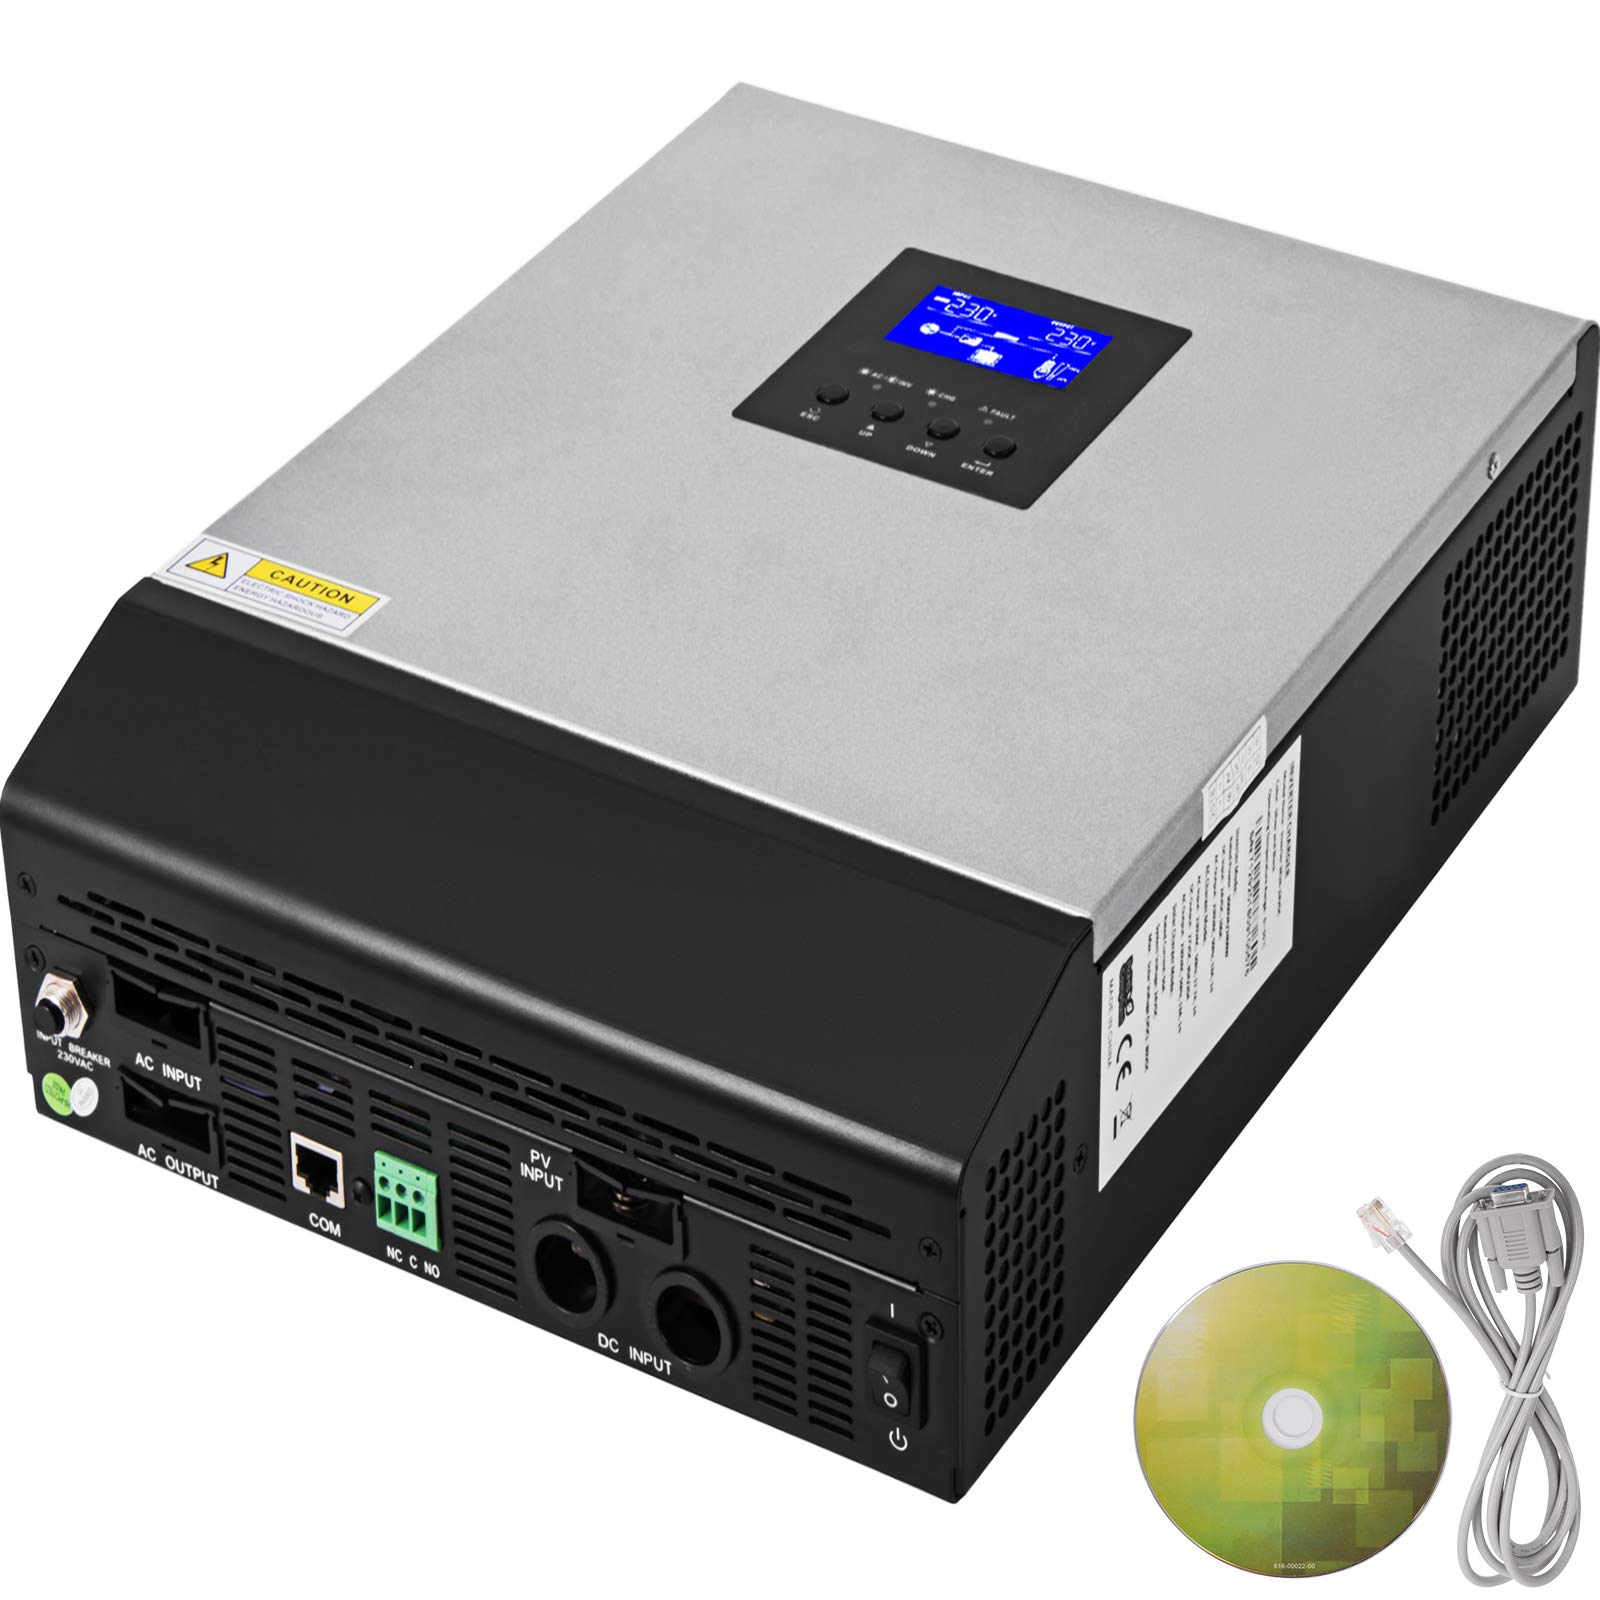 Mophorn Inverter 2400W Solar Pure Sine Wave Power 50A Solar Charger DC 24V AC Output 230V with Utility Charger 50HZ